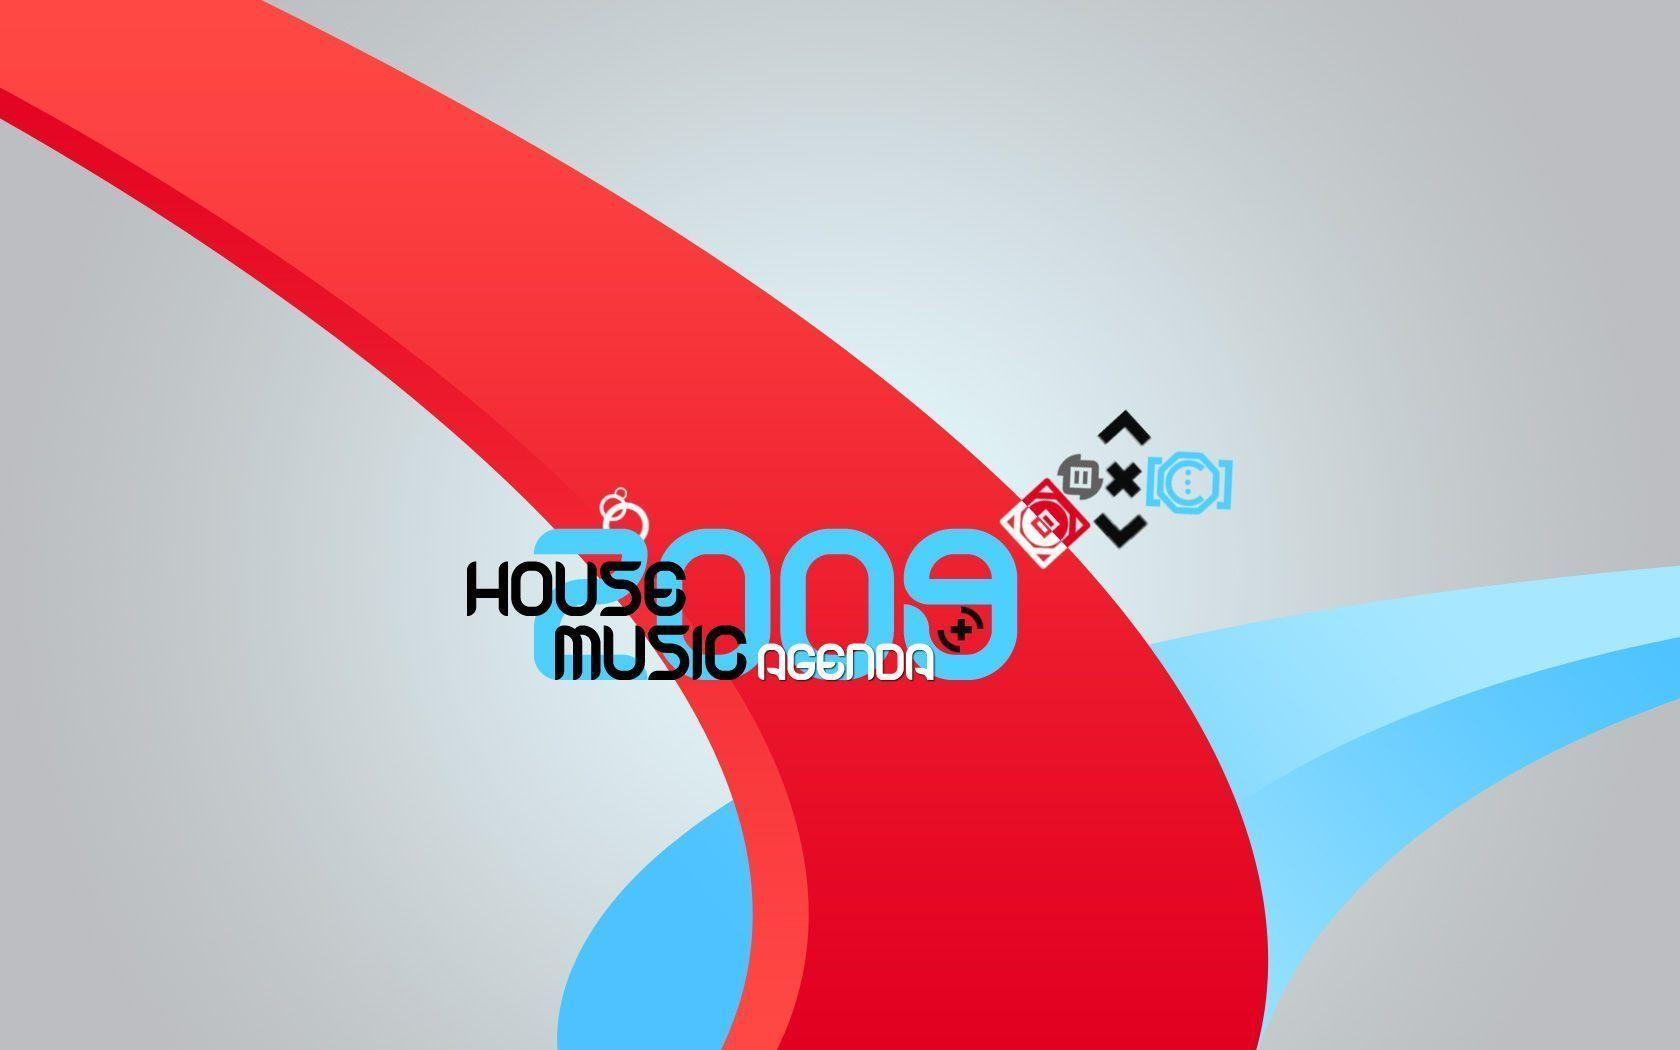 House Music Agenda wallpapers | House Music Agenda stock photos